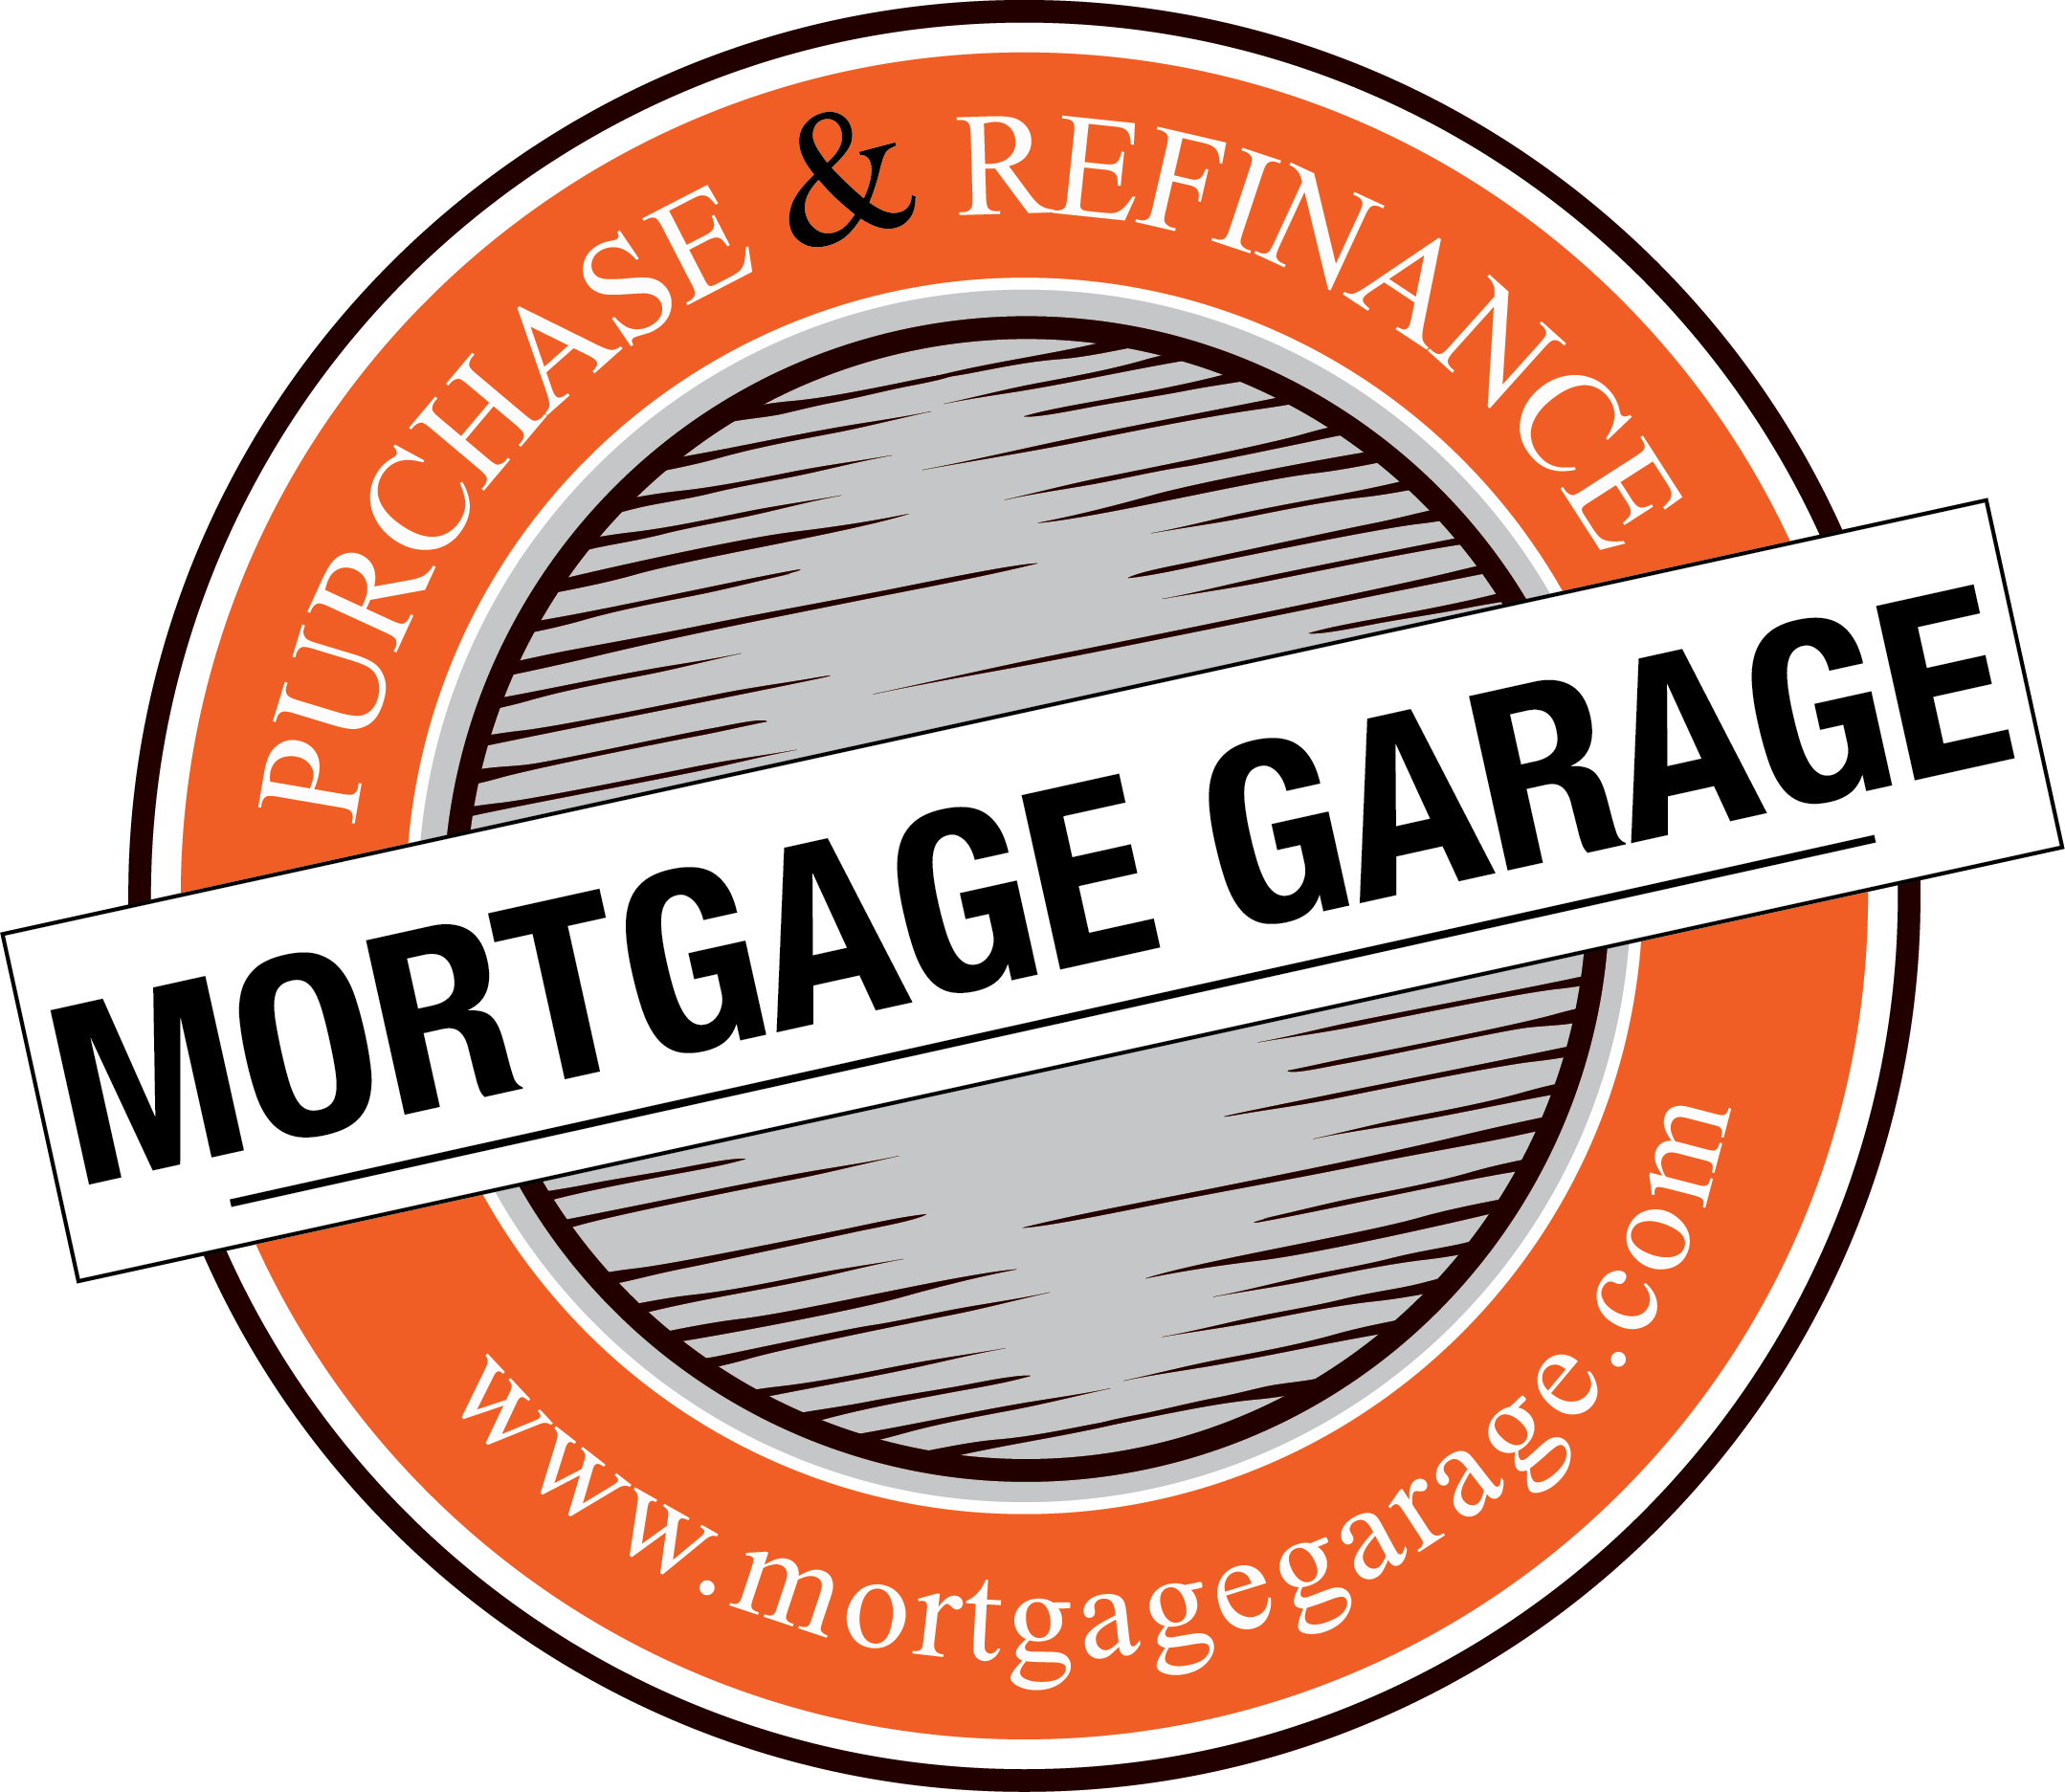 Final Mortgage Garage Logo Outlines Reverse.png